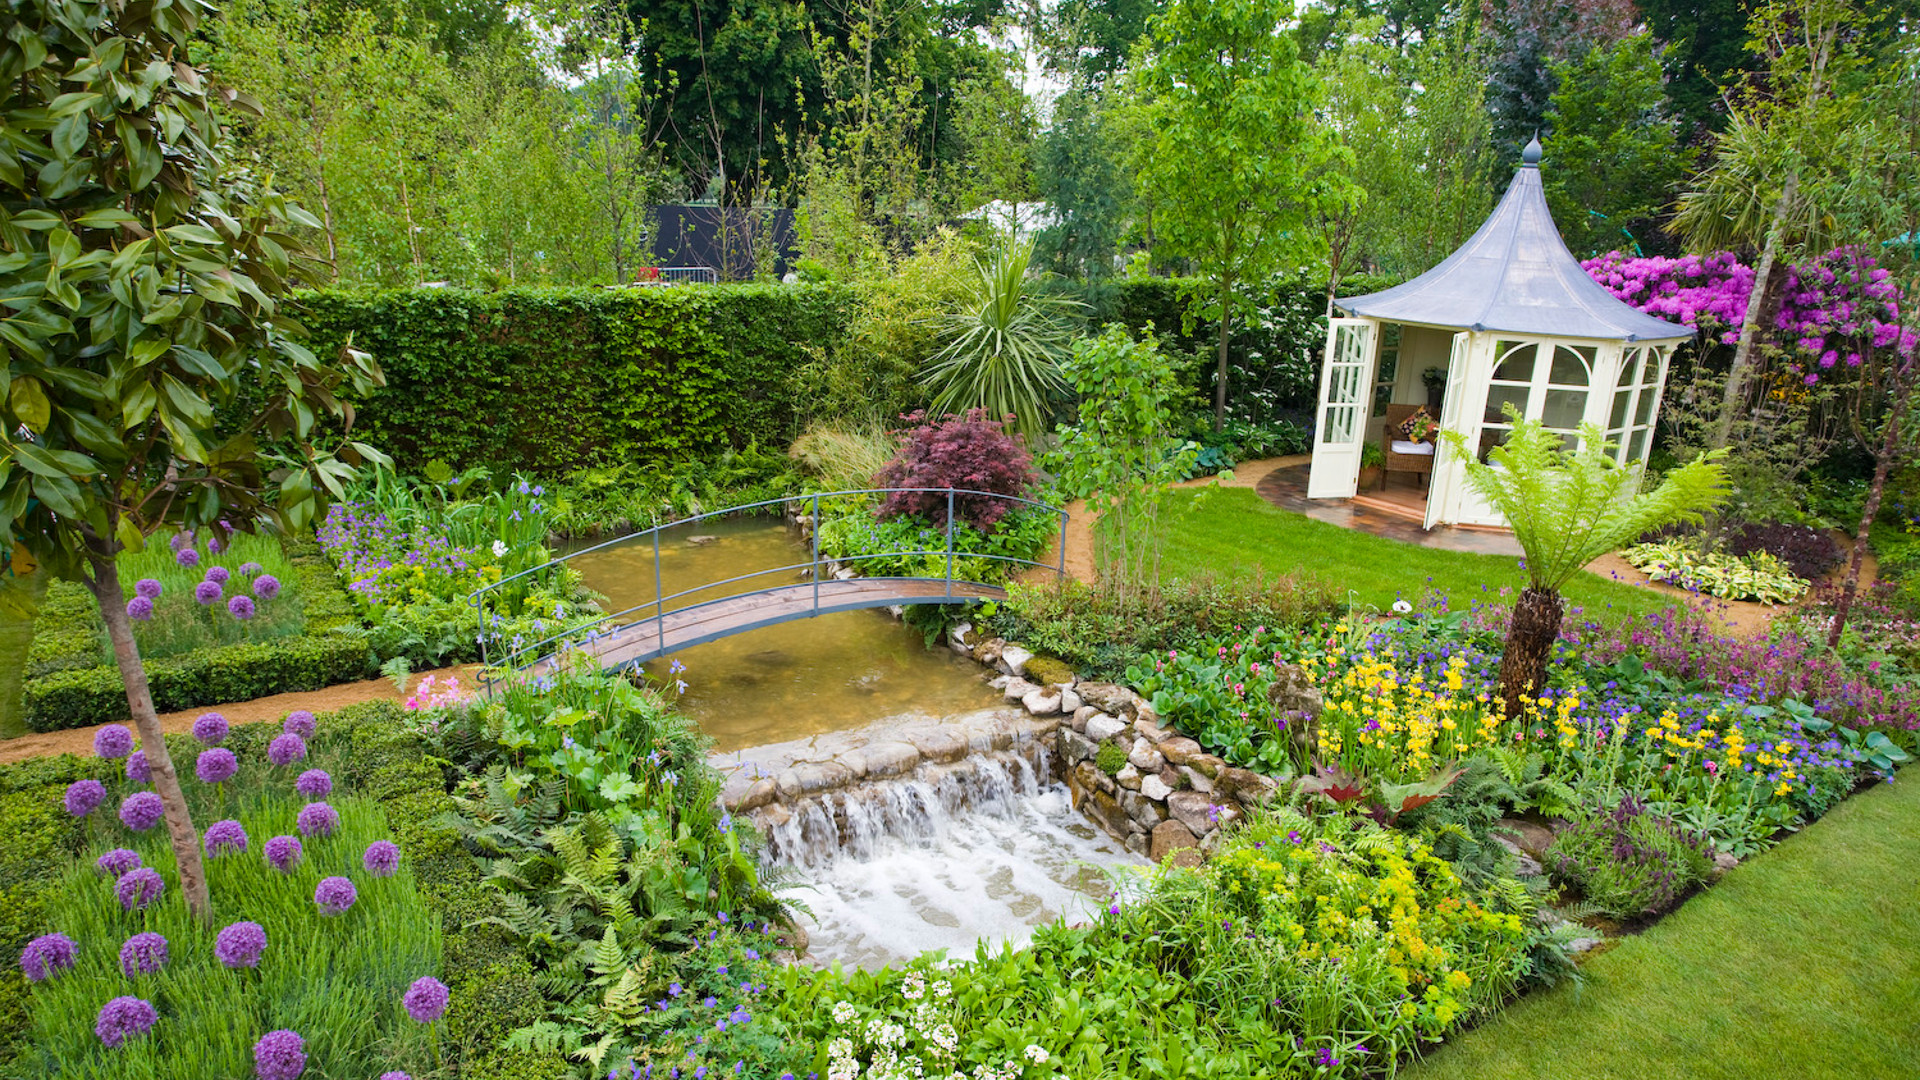 Tim austen garden designs designer gardens for Garden designs images pictures